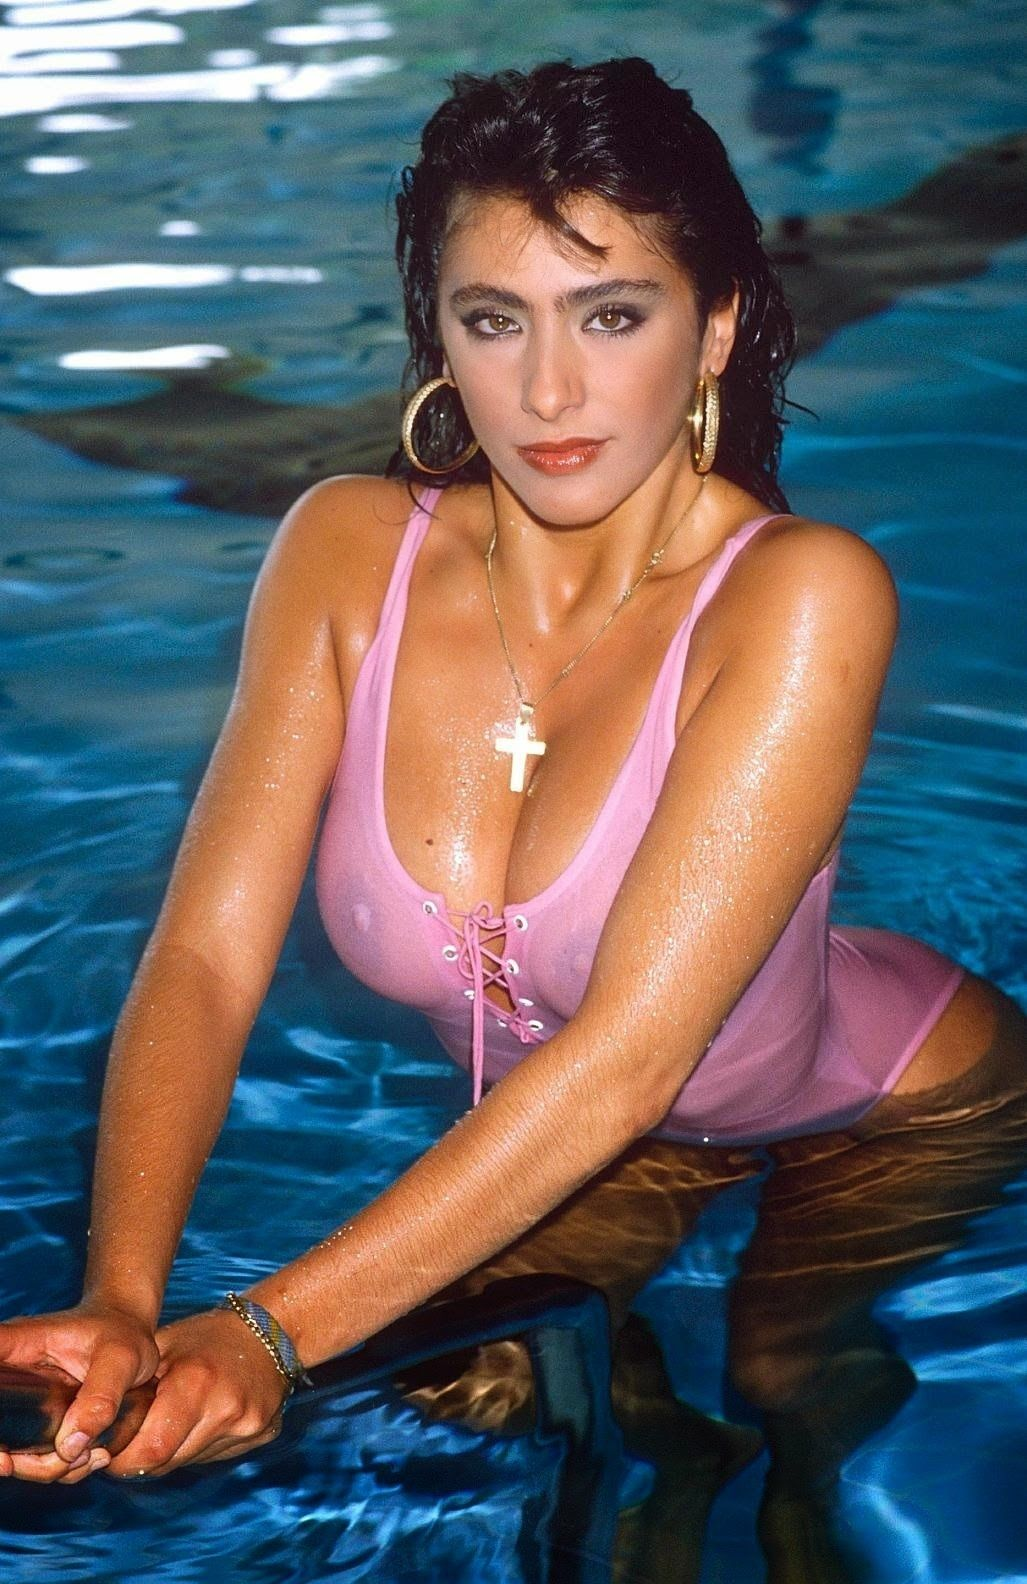 Feet Sabrina Salerno naked (72 photos), Sexy, Paparazzi, Boobs, cameltoe 2019